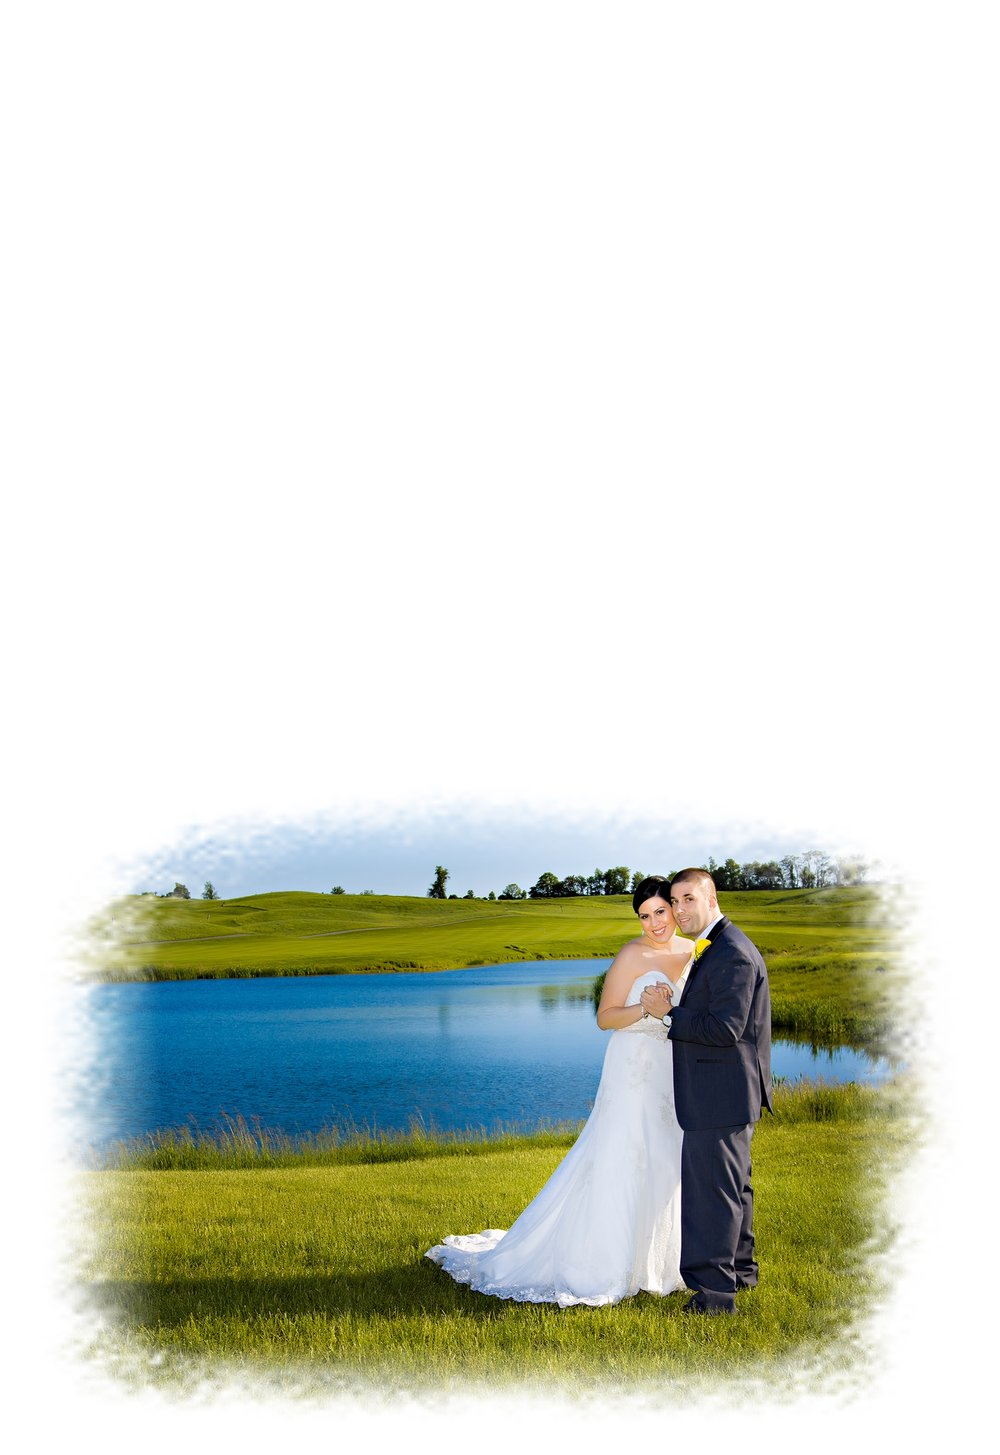 bergen_county_new_jersey_wedding_thank_you_cards_0001.jpg